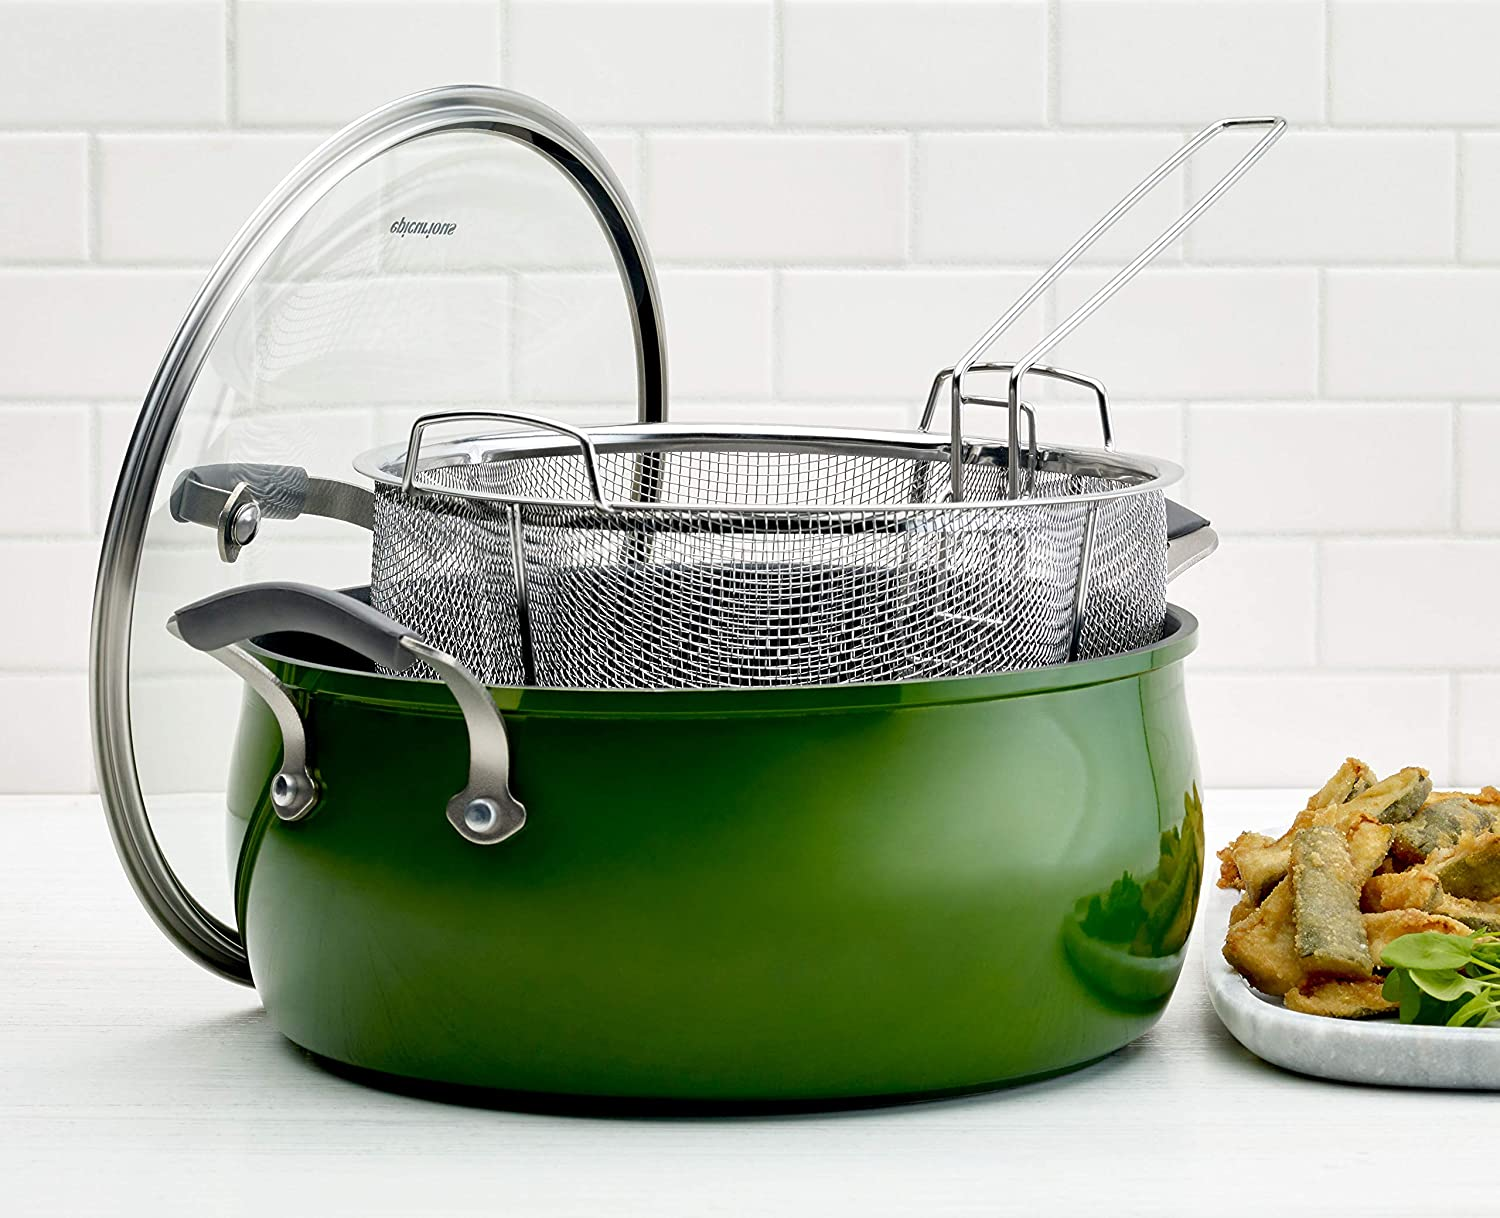 Epicurious Cookware Collection- Dishwasher Safe Oven Safe, Nonstick Aluminum 3 Piece Green Fry Basket Set